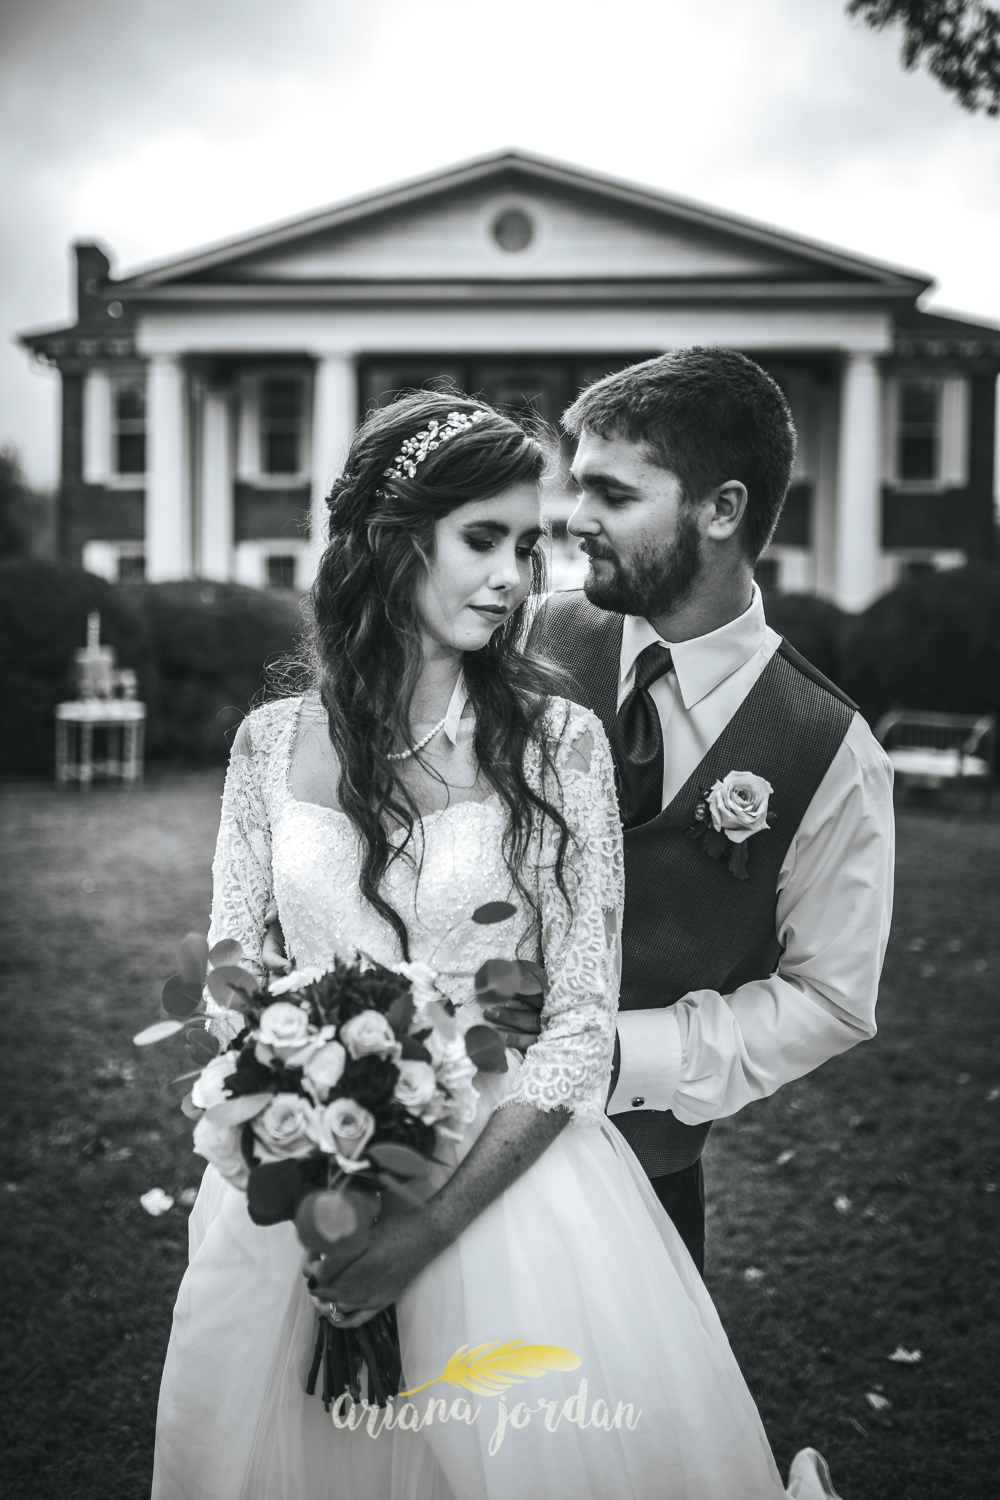 208 - Ariana Jordan - Kentucky Wedding Photographer - Landon & Tabitha 6981.jpg